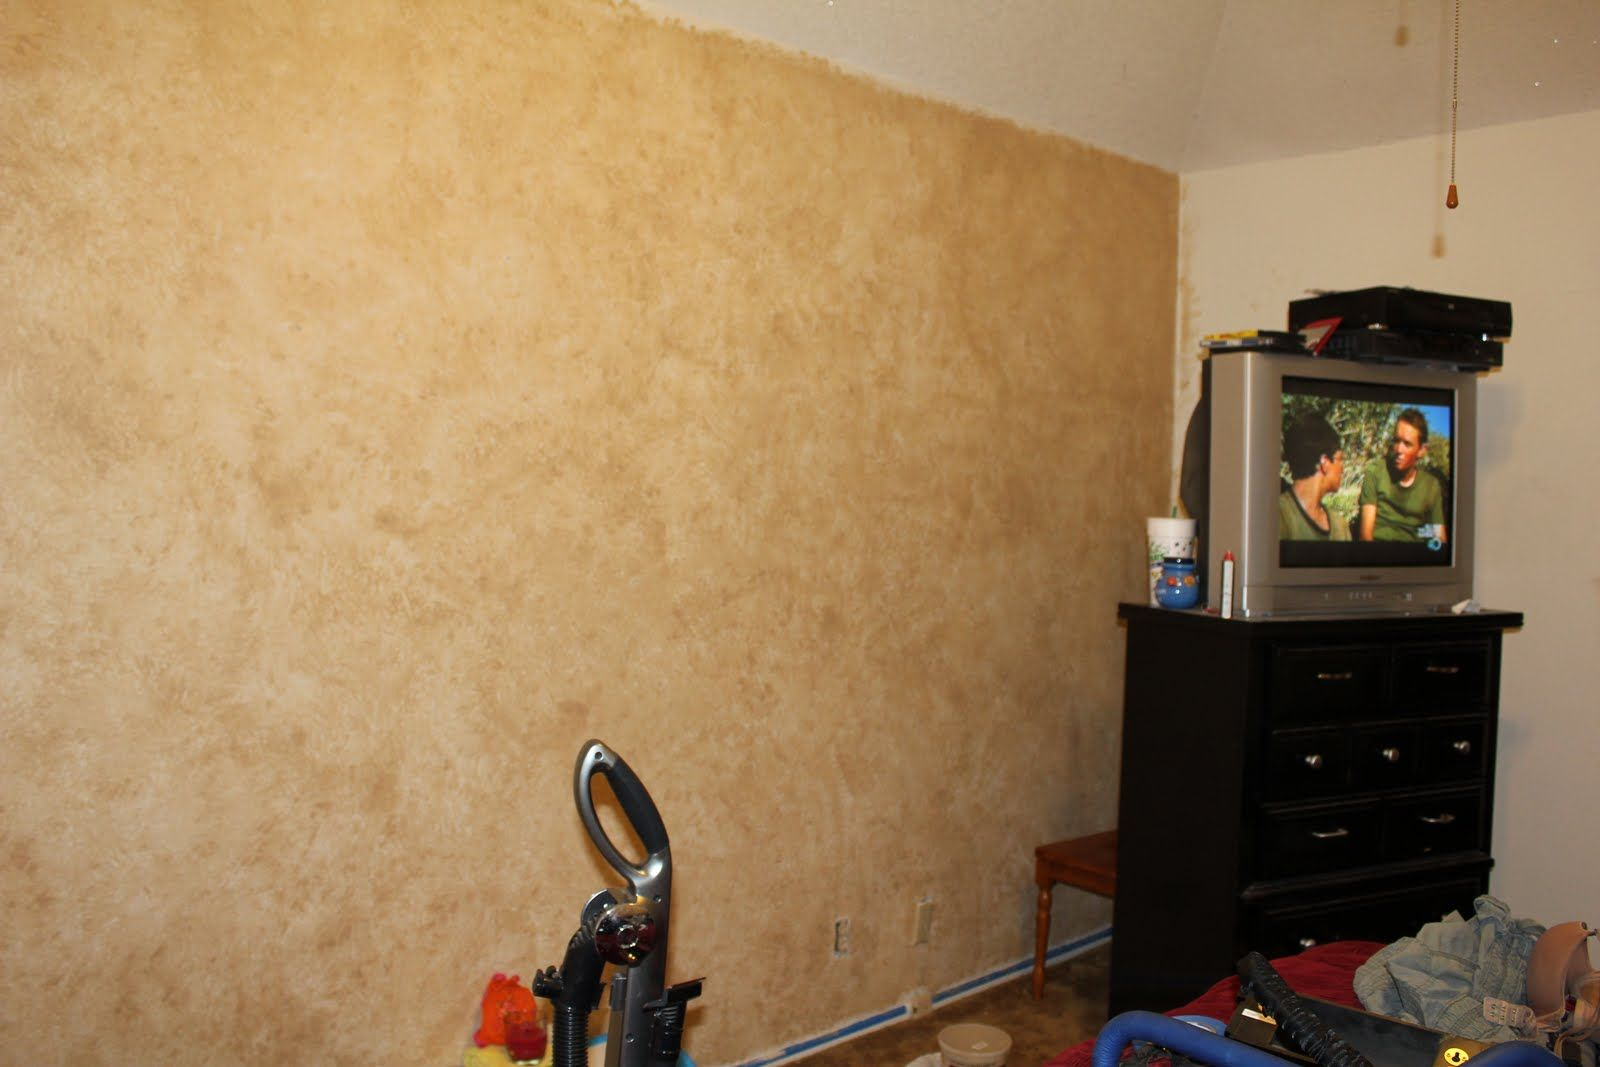 Sponge Painted Wall Beige With Images Sponge Painting Walls